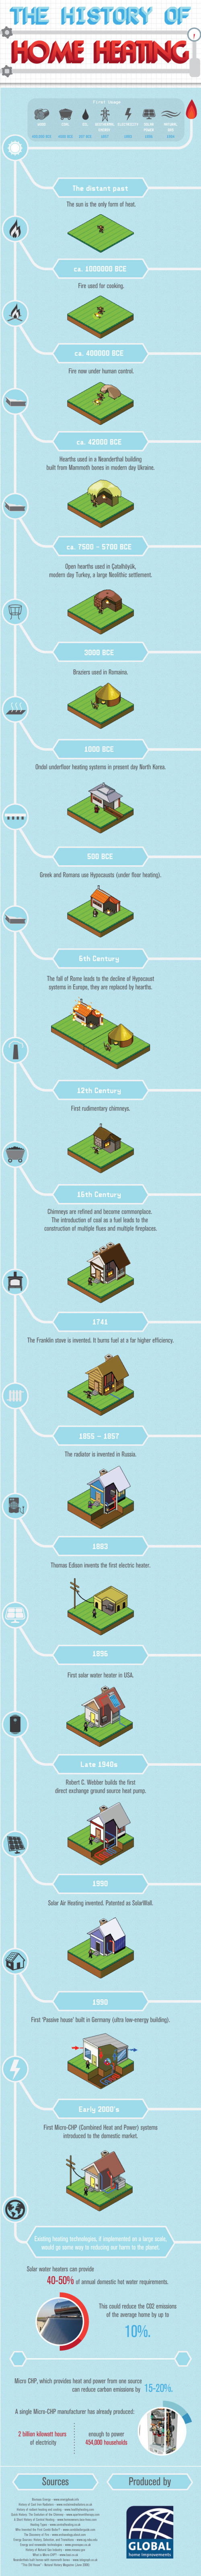 The History of Home Heating infographic